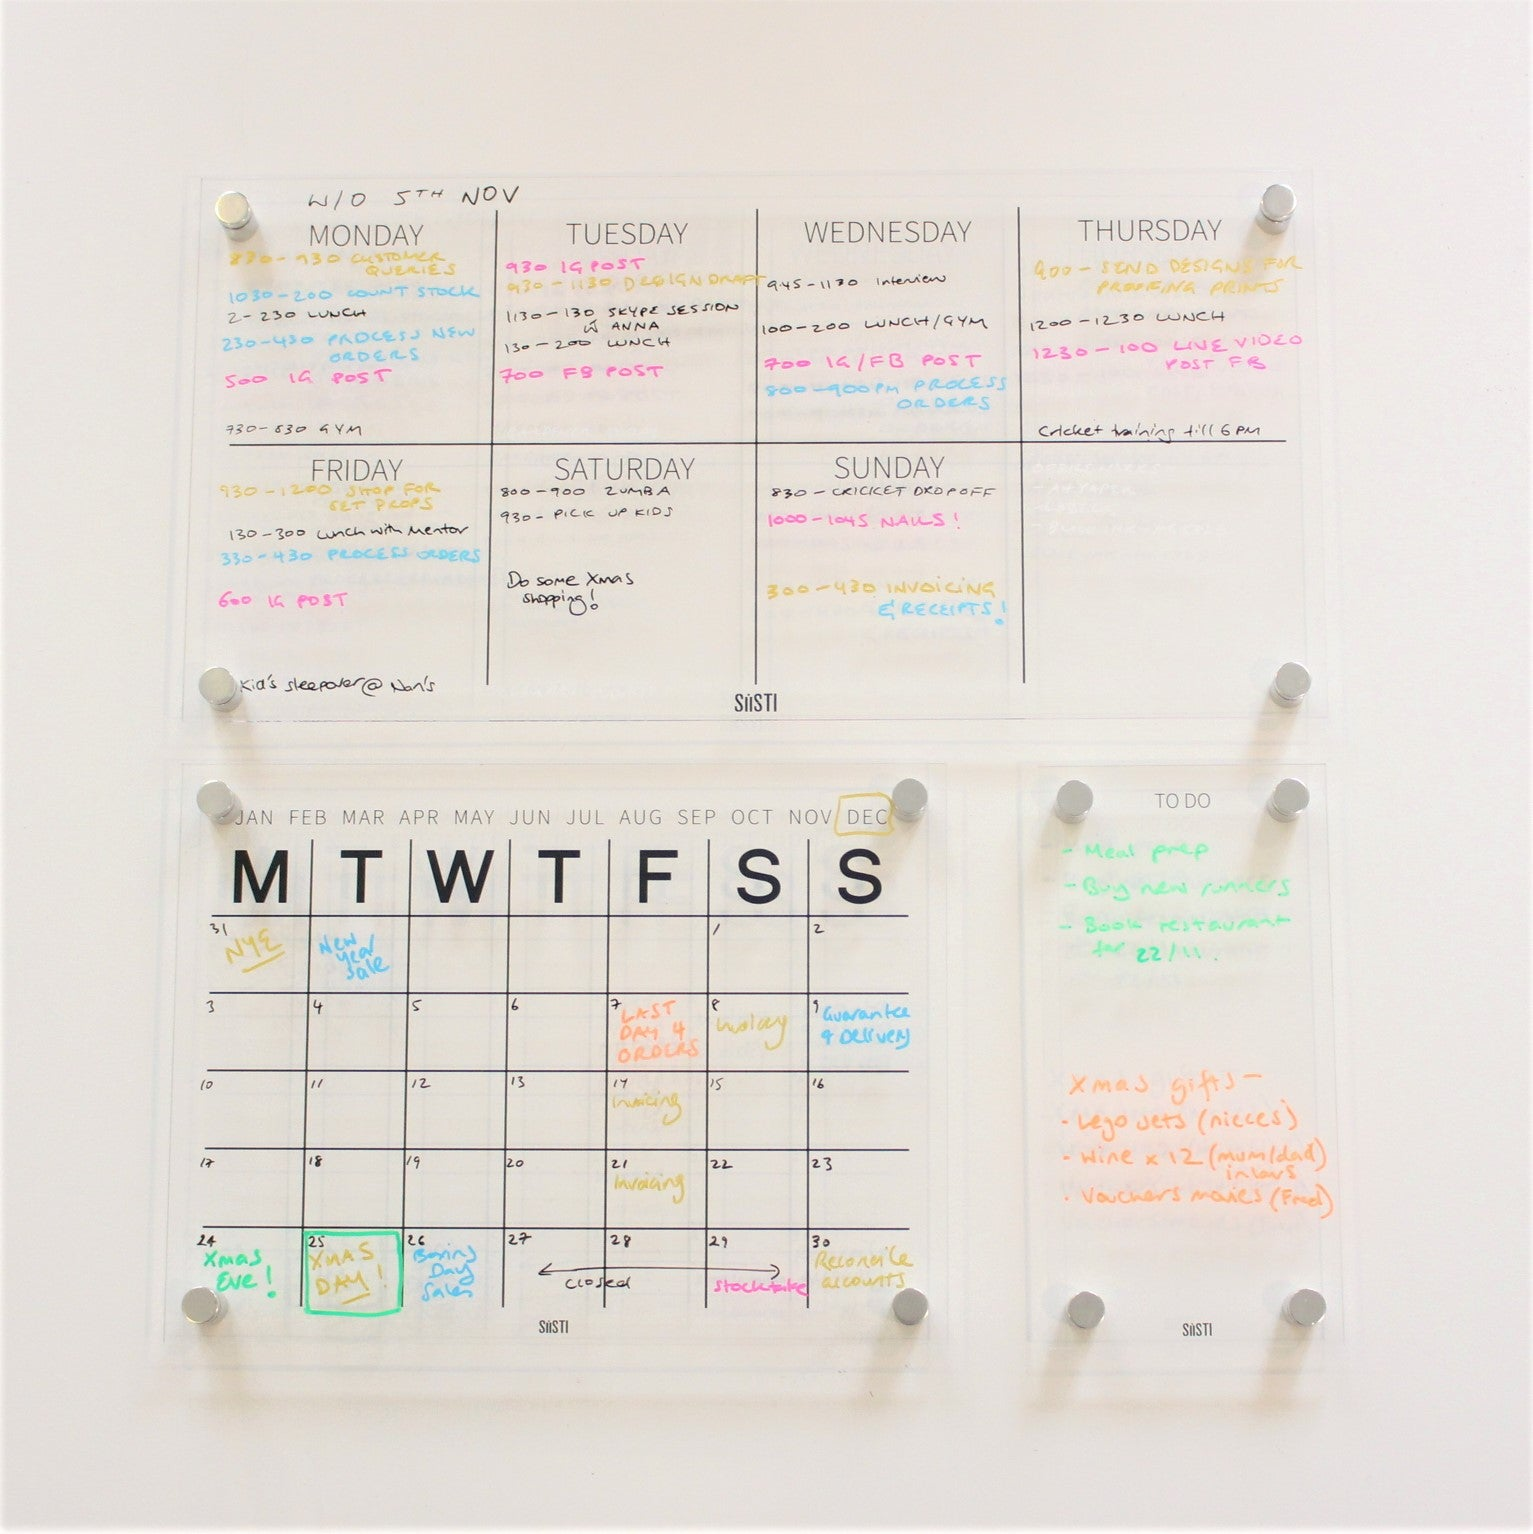 acrylic planning system with weekly wall planner